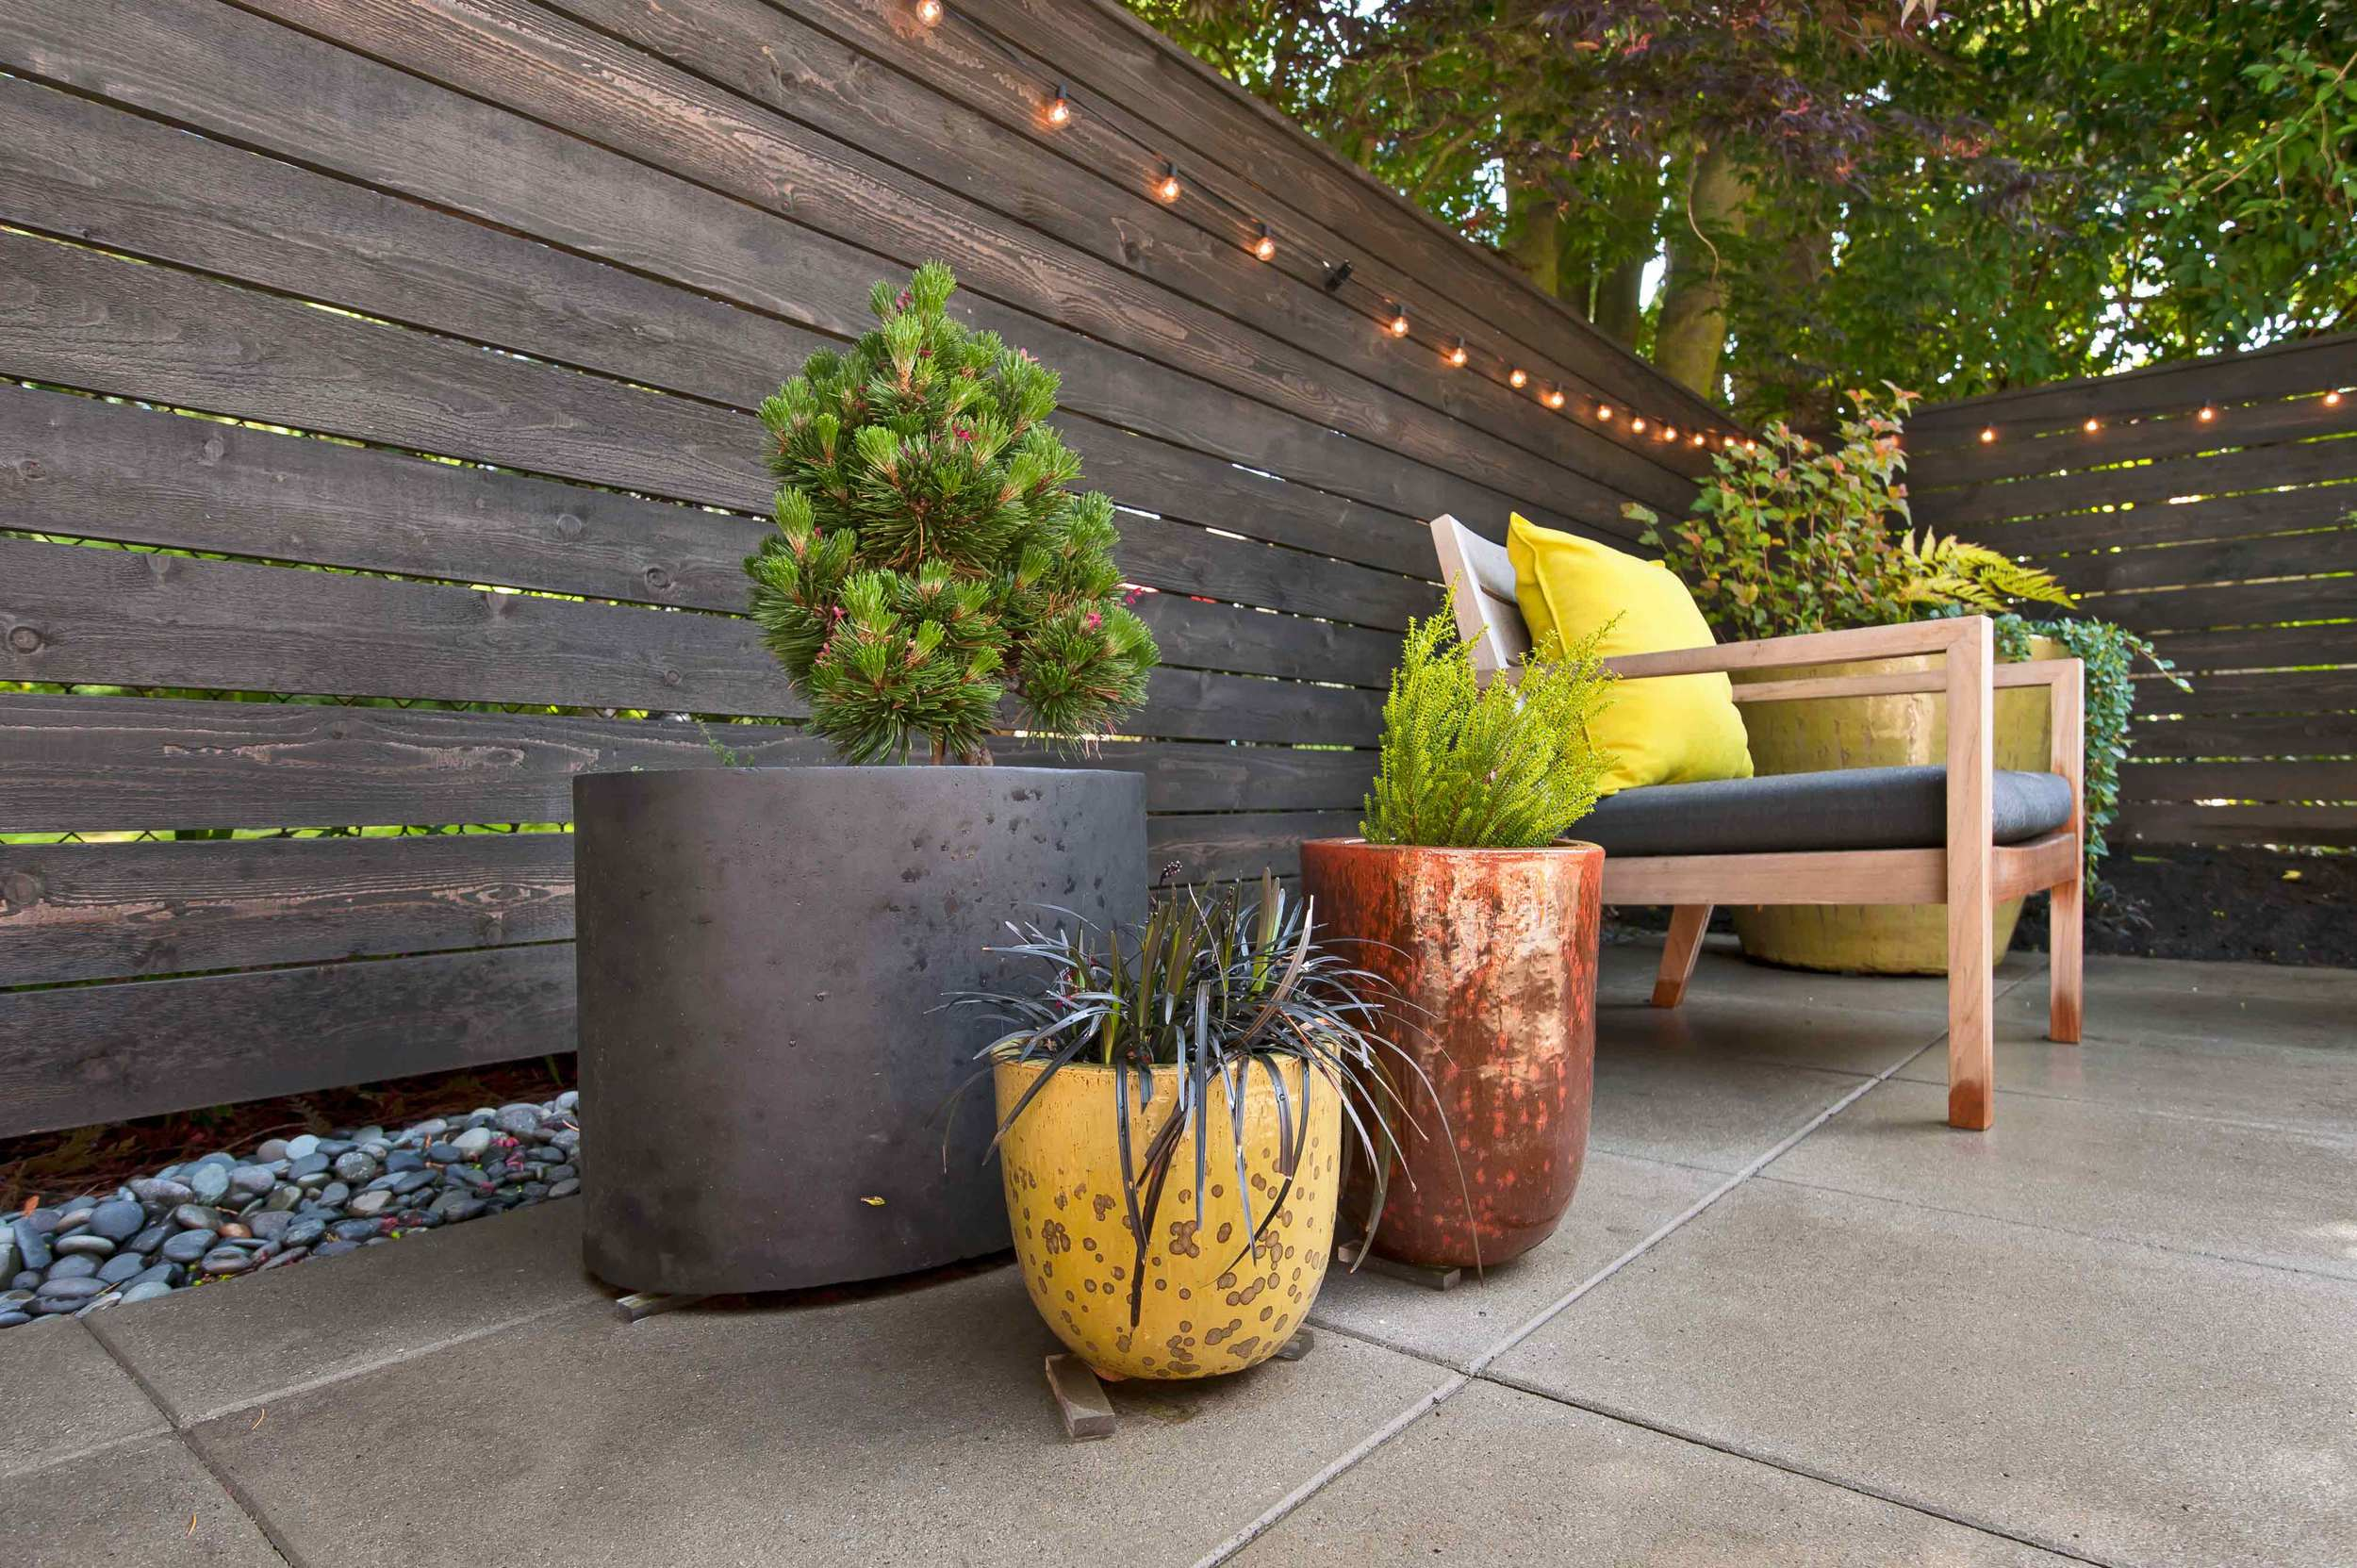 planters-with-lights-onSMART.jpg